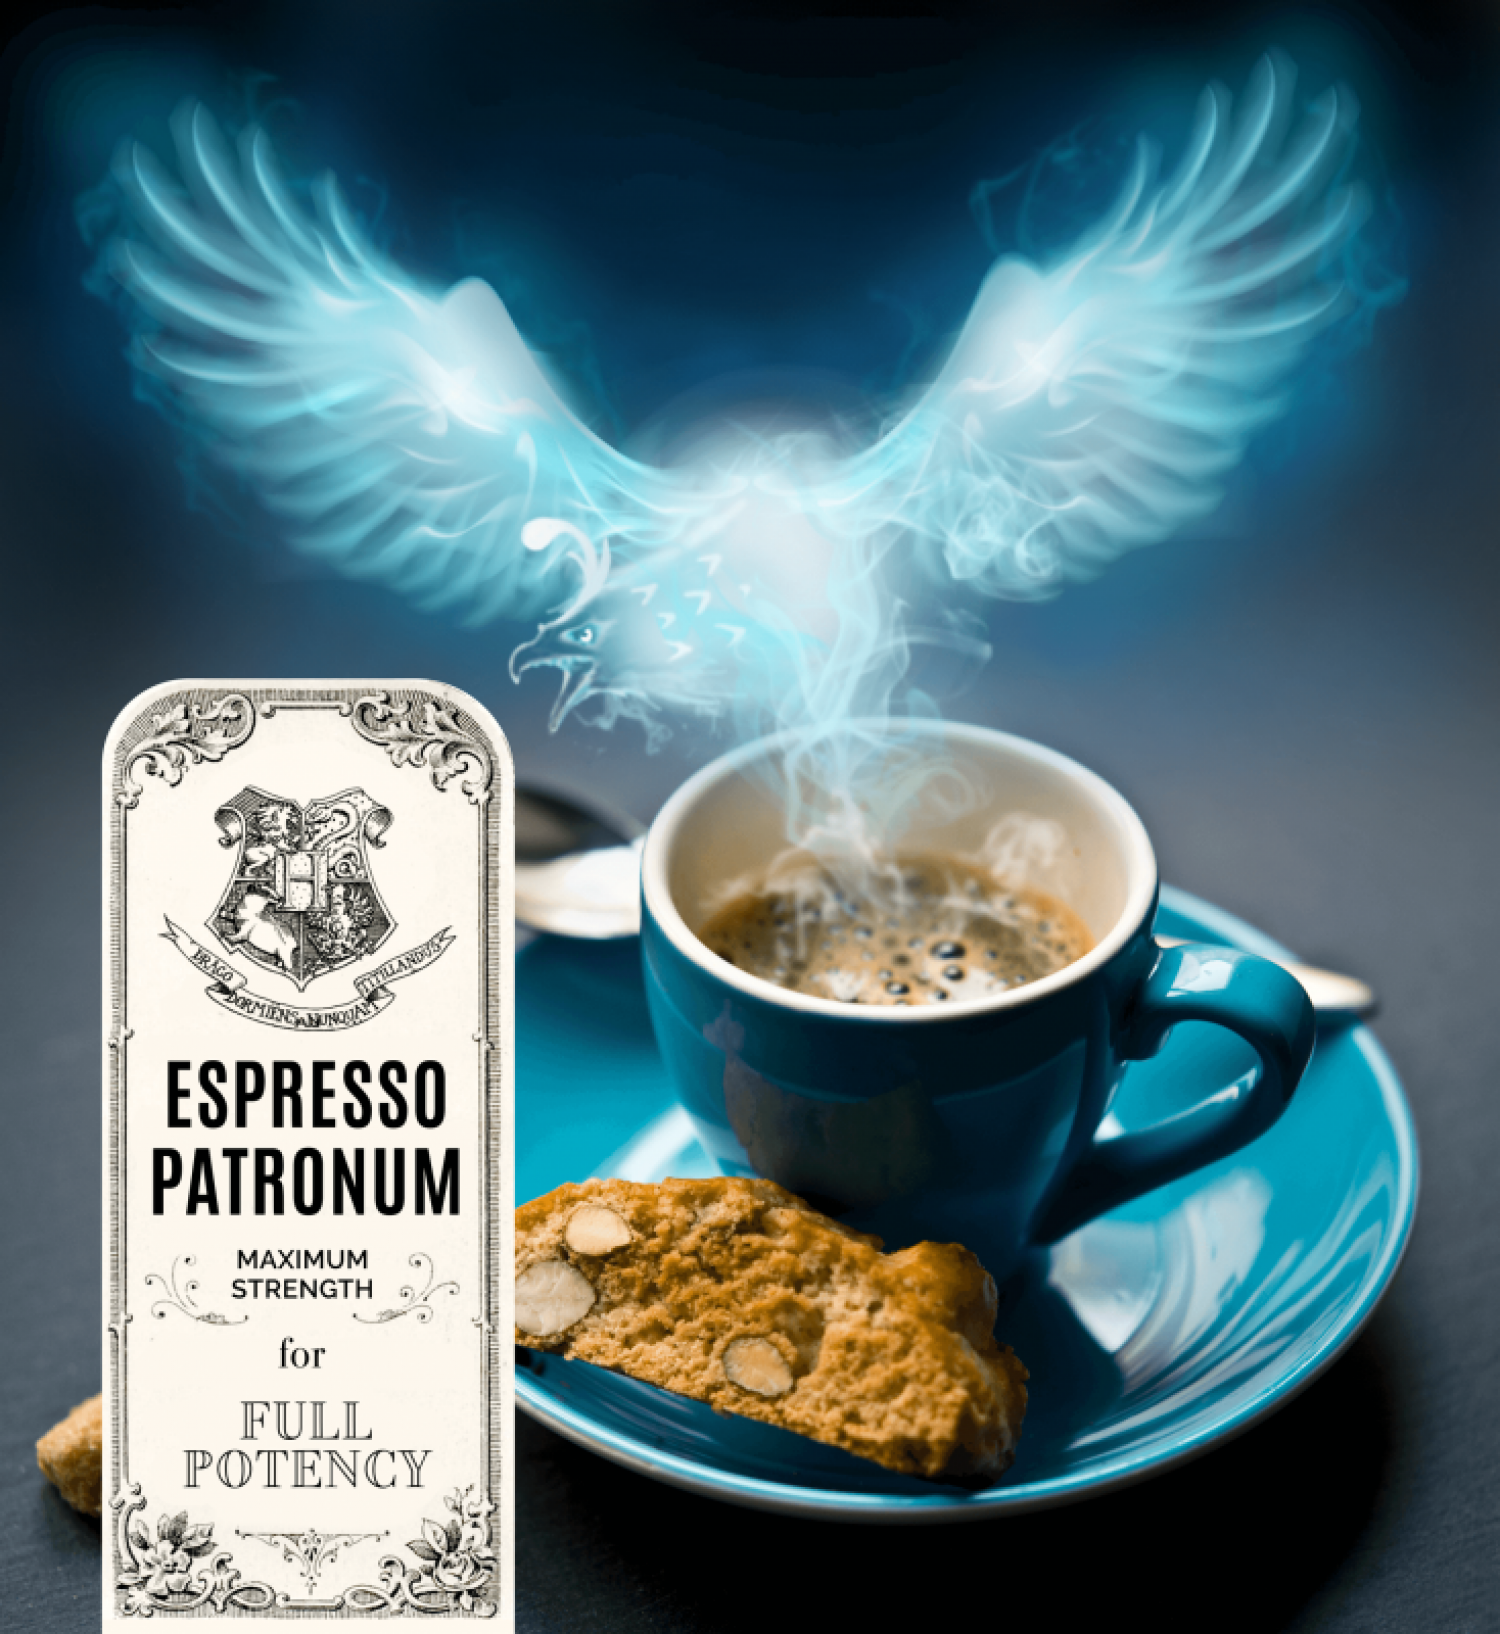 Espresso Patronum: An Uplifting Blend With Chocolate Notes Infographic